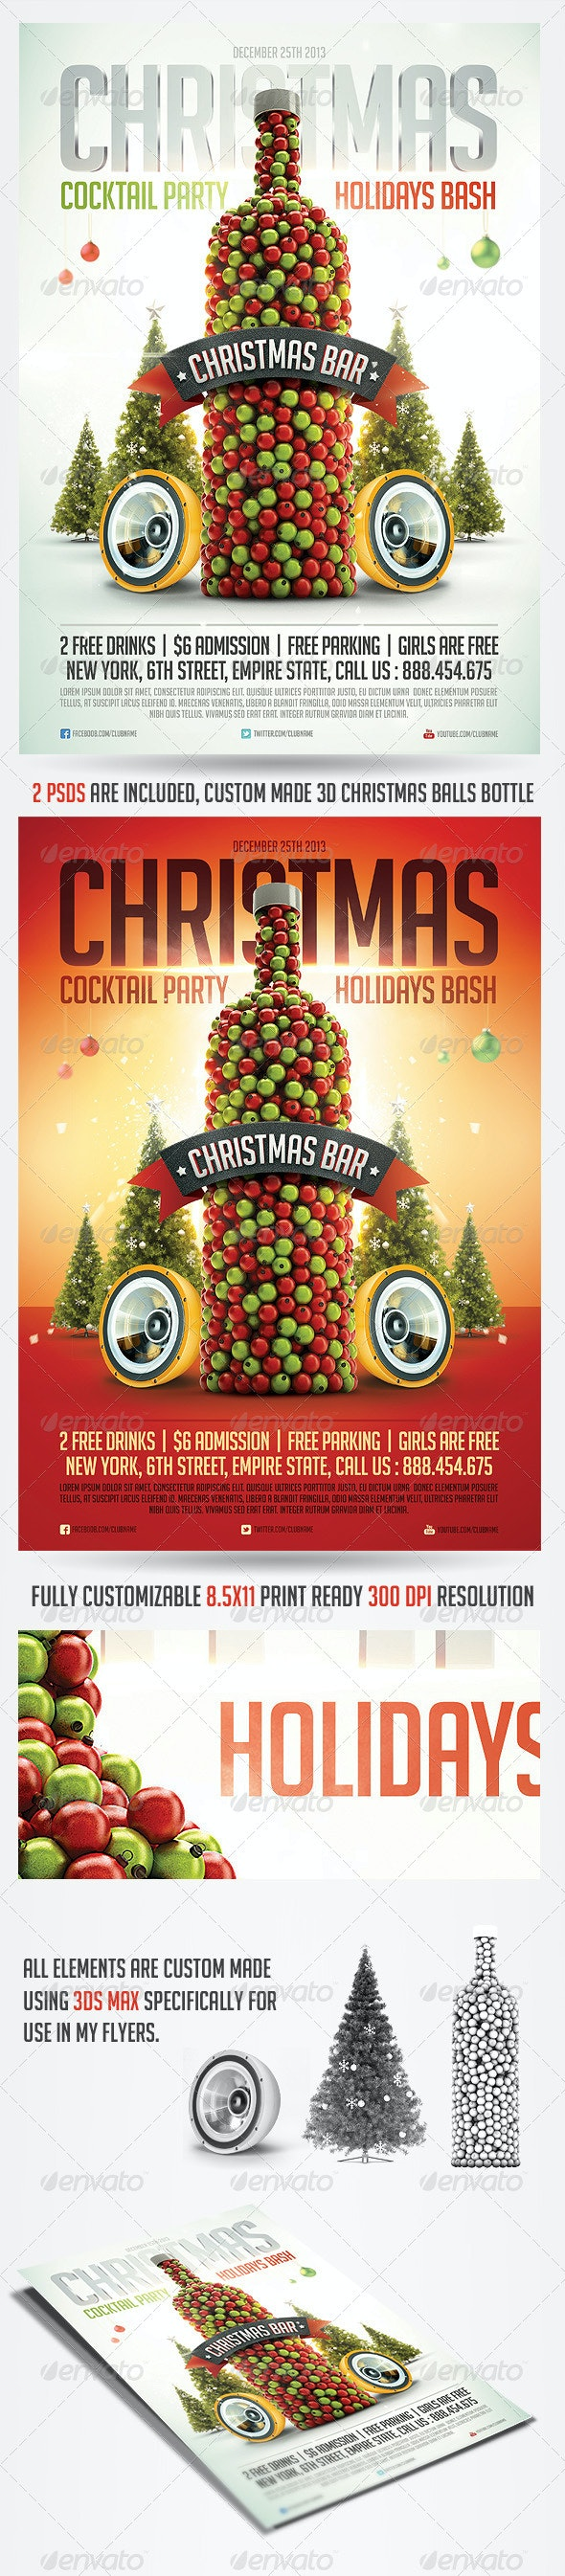 Christmas Cocktail Flyer Template - Holidays Events